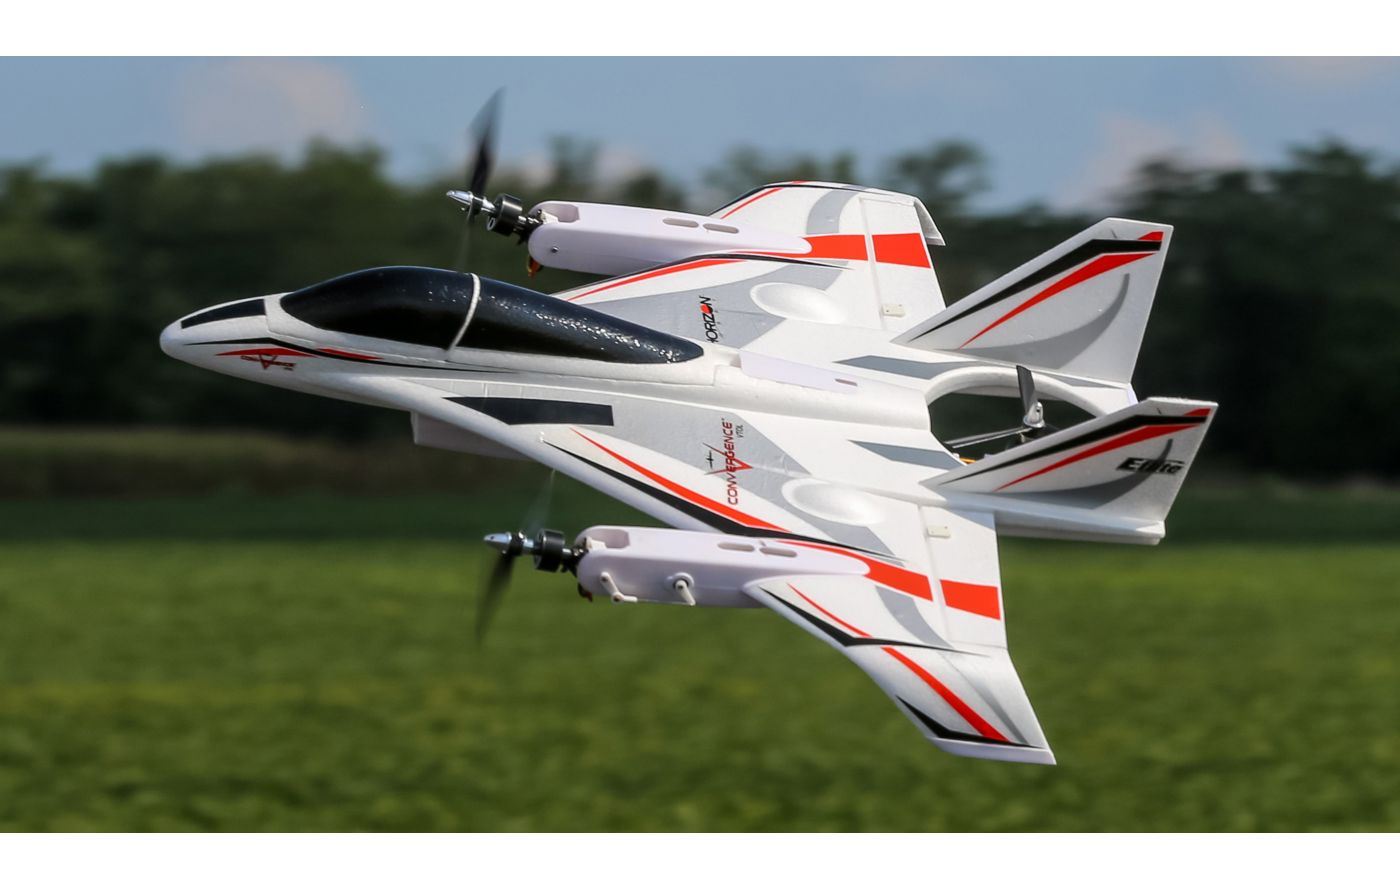 Image for Convergence VTOL BNF Basic, 650mm from Force RC